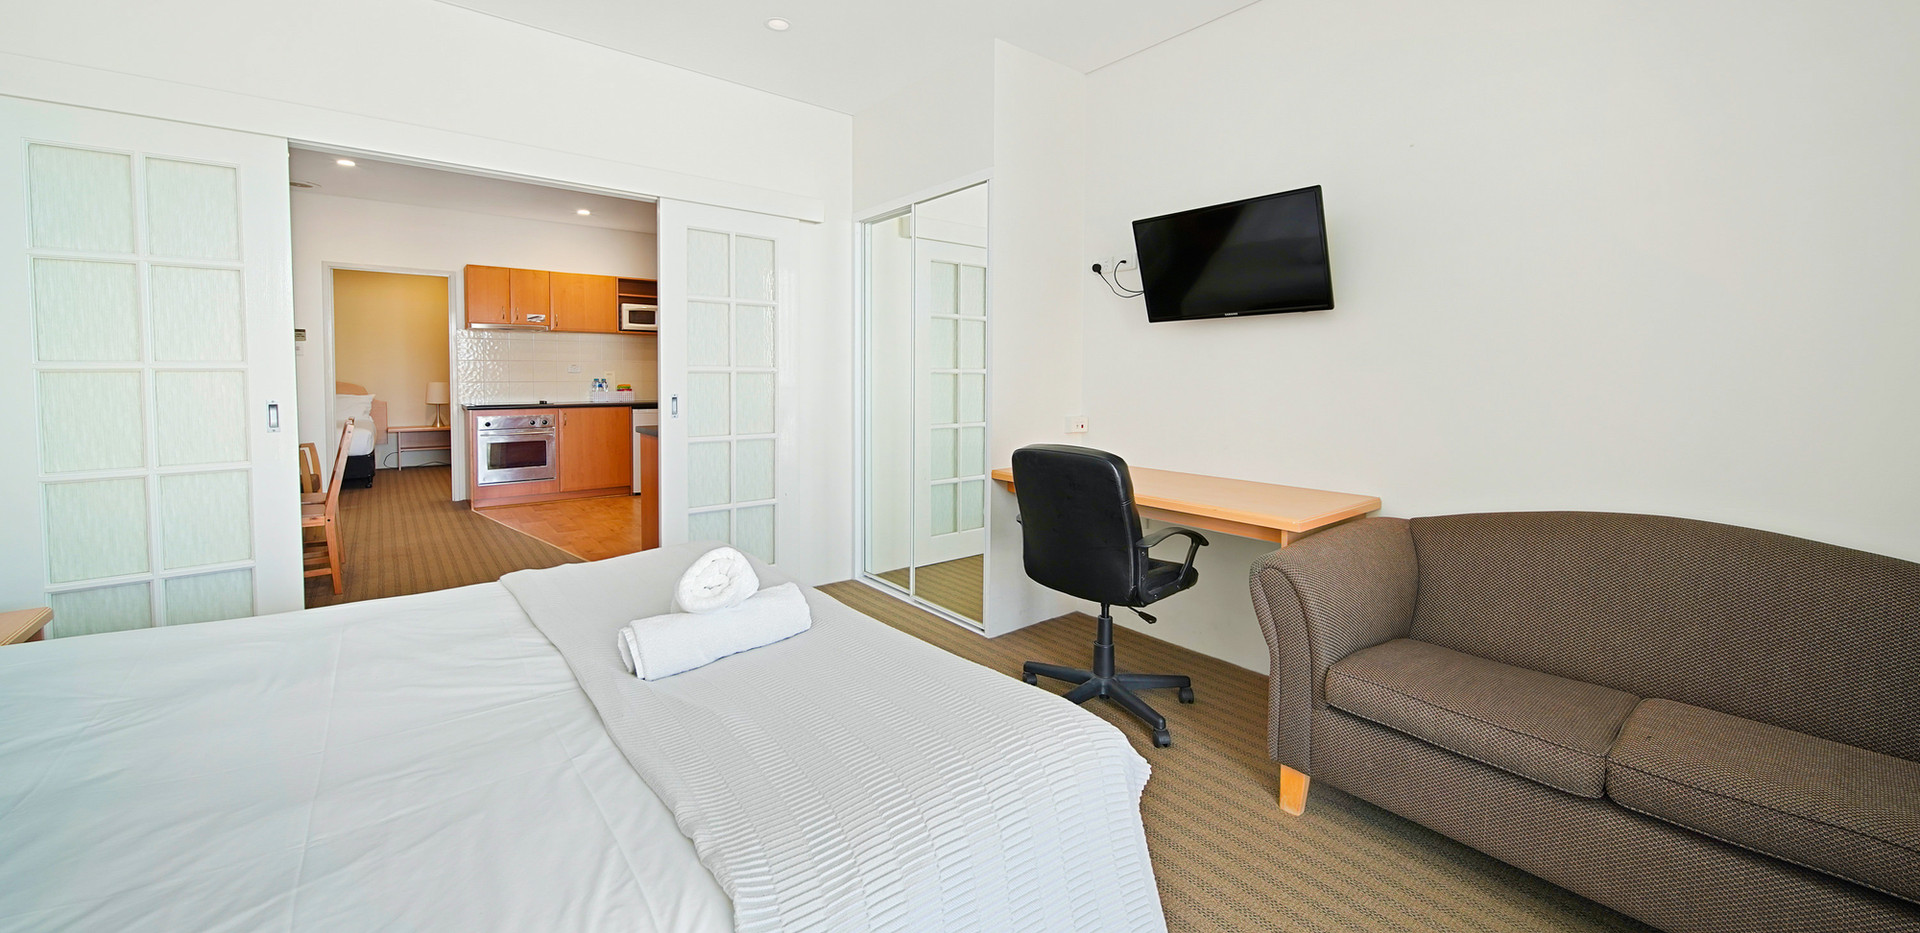 21. Main bedroom - Two Bedroom - All Sui